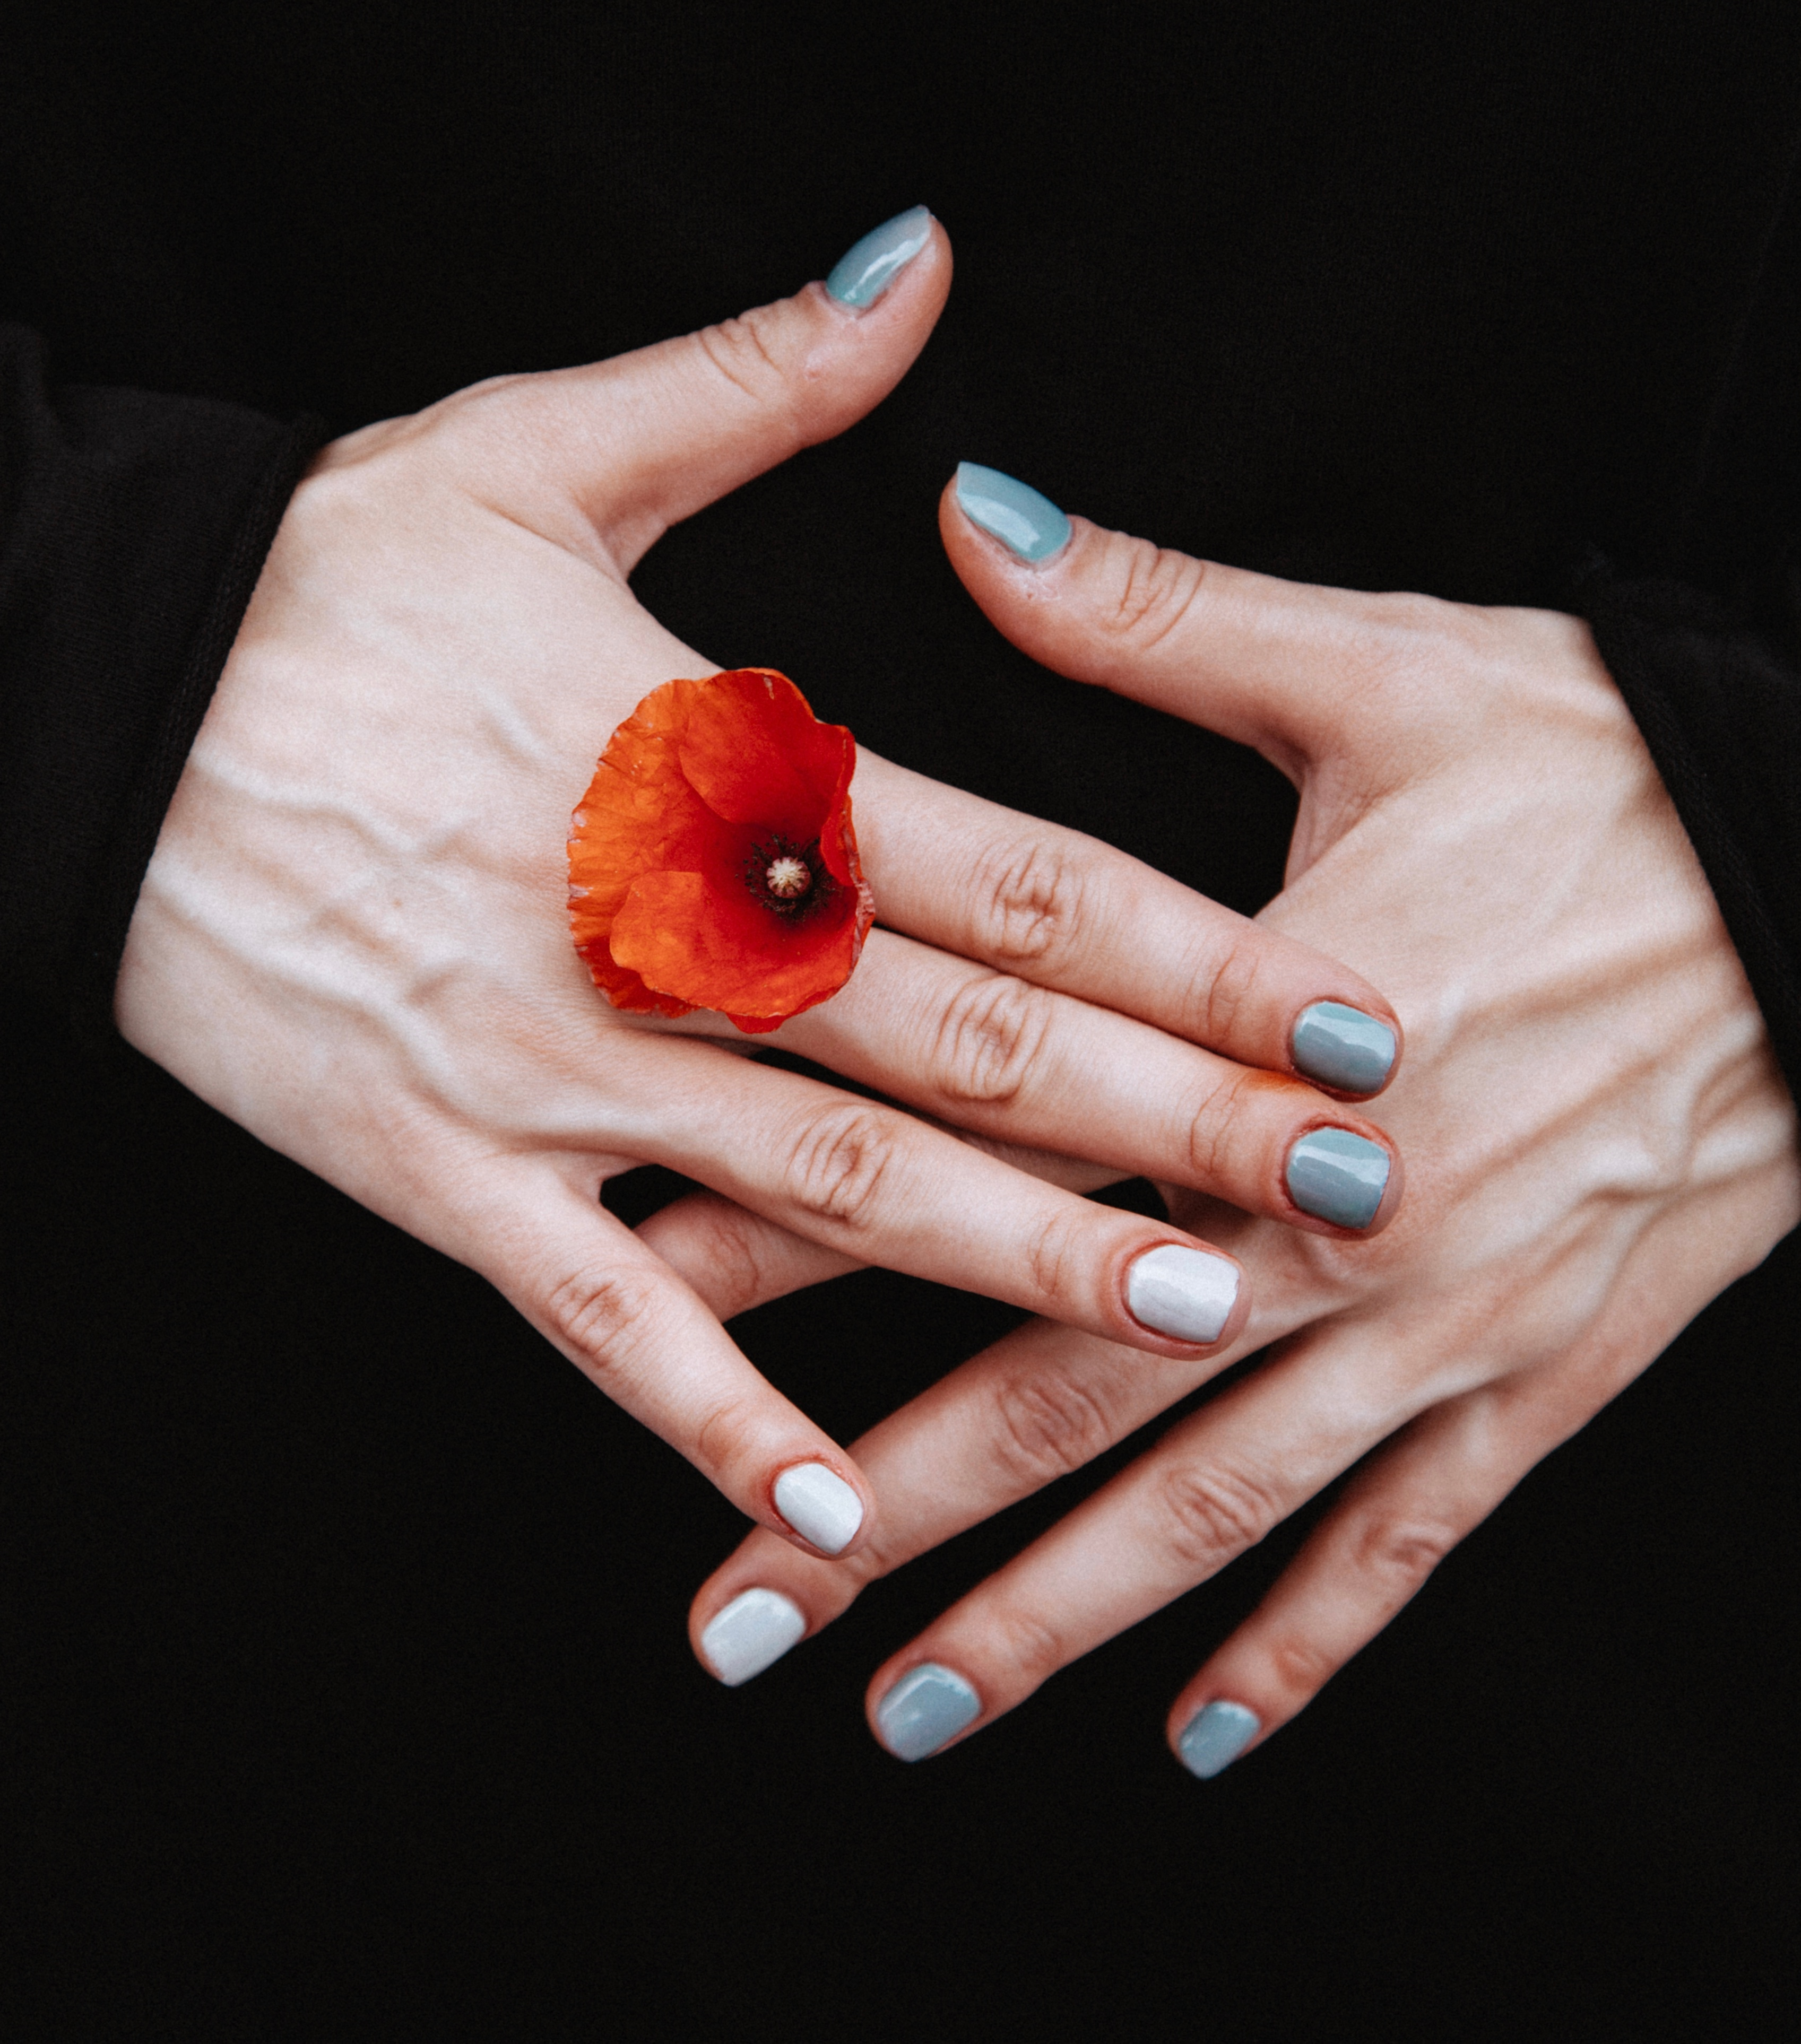 person-holding-red-petaled-flower-between-his-finger-3230266